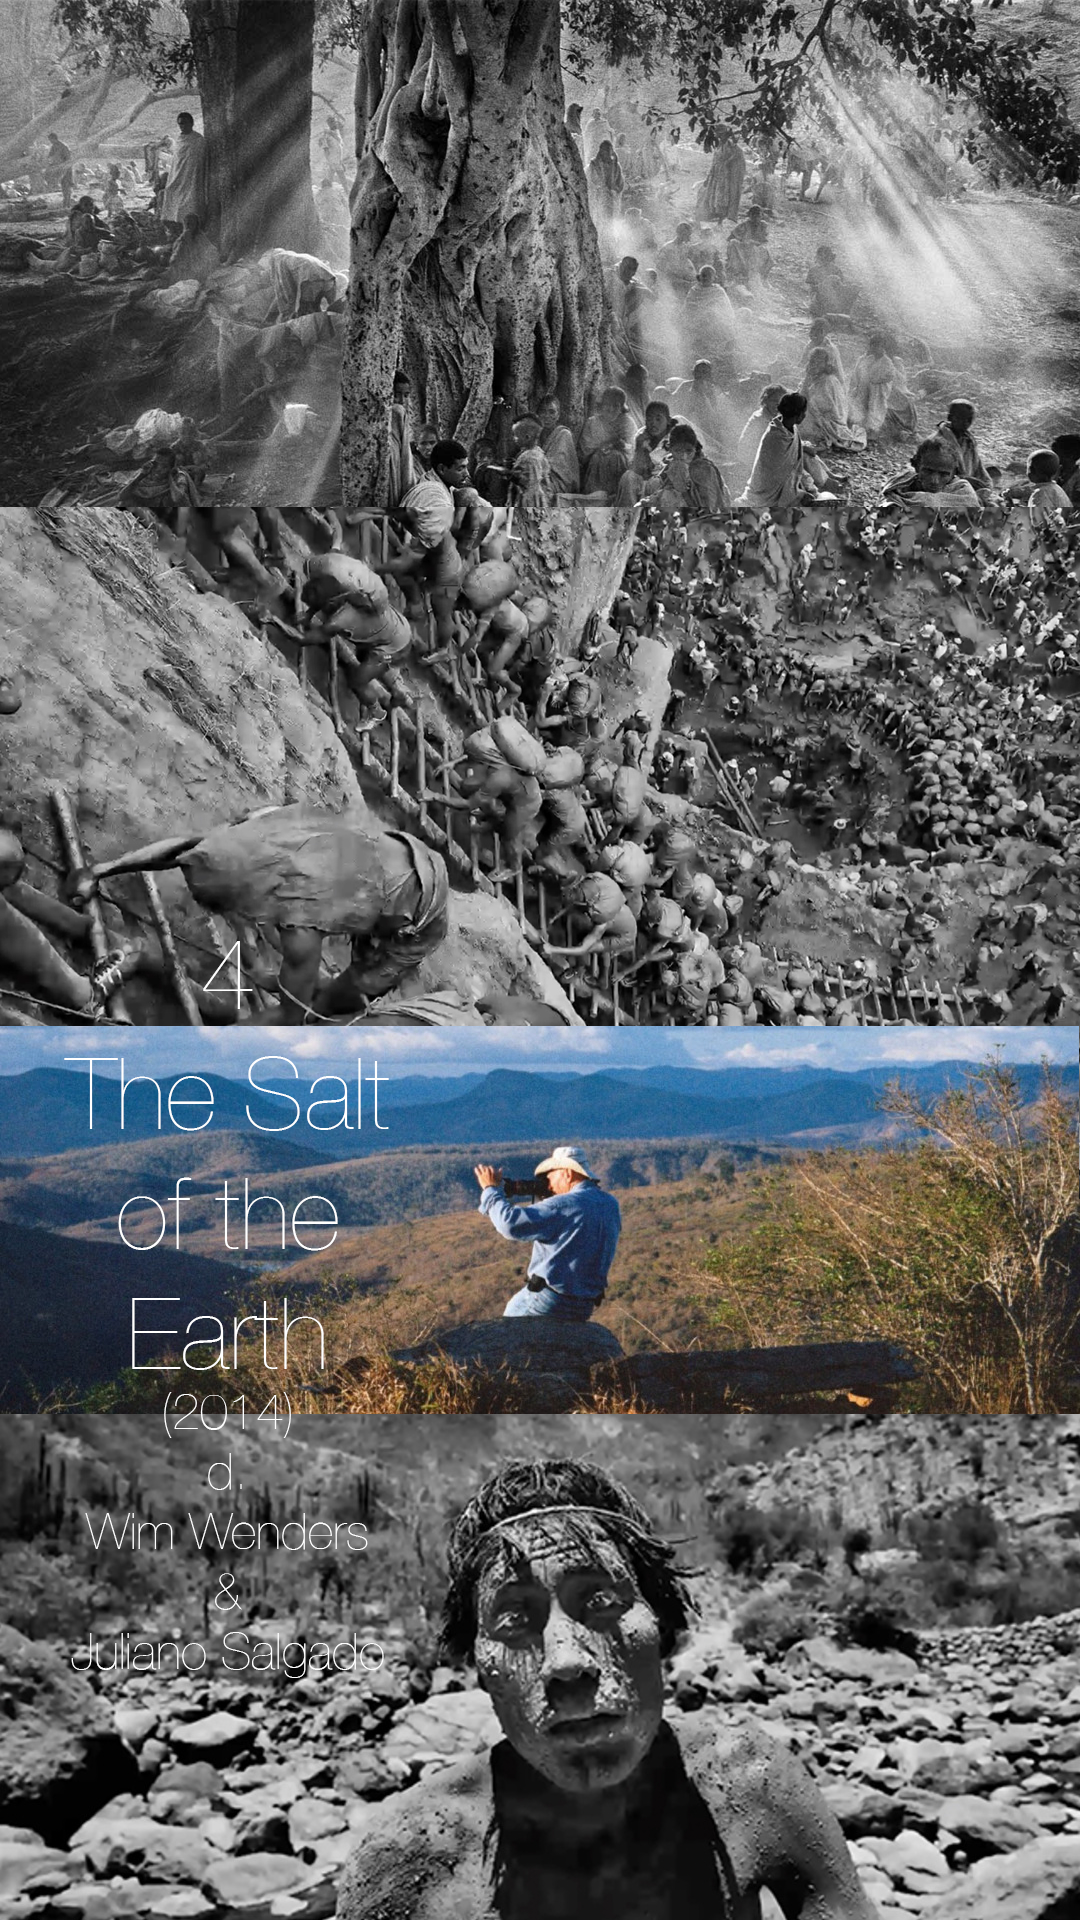 THE SALT OF THE EARTH is a career retrospective of an incredible photographer, and shines a light on some of the most gorgeous pictures ever taken, and shows how photography can represent some of the deepest parts of the human condition.